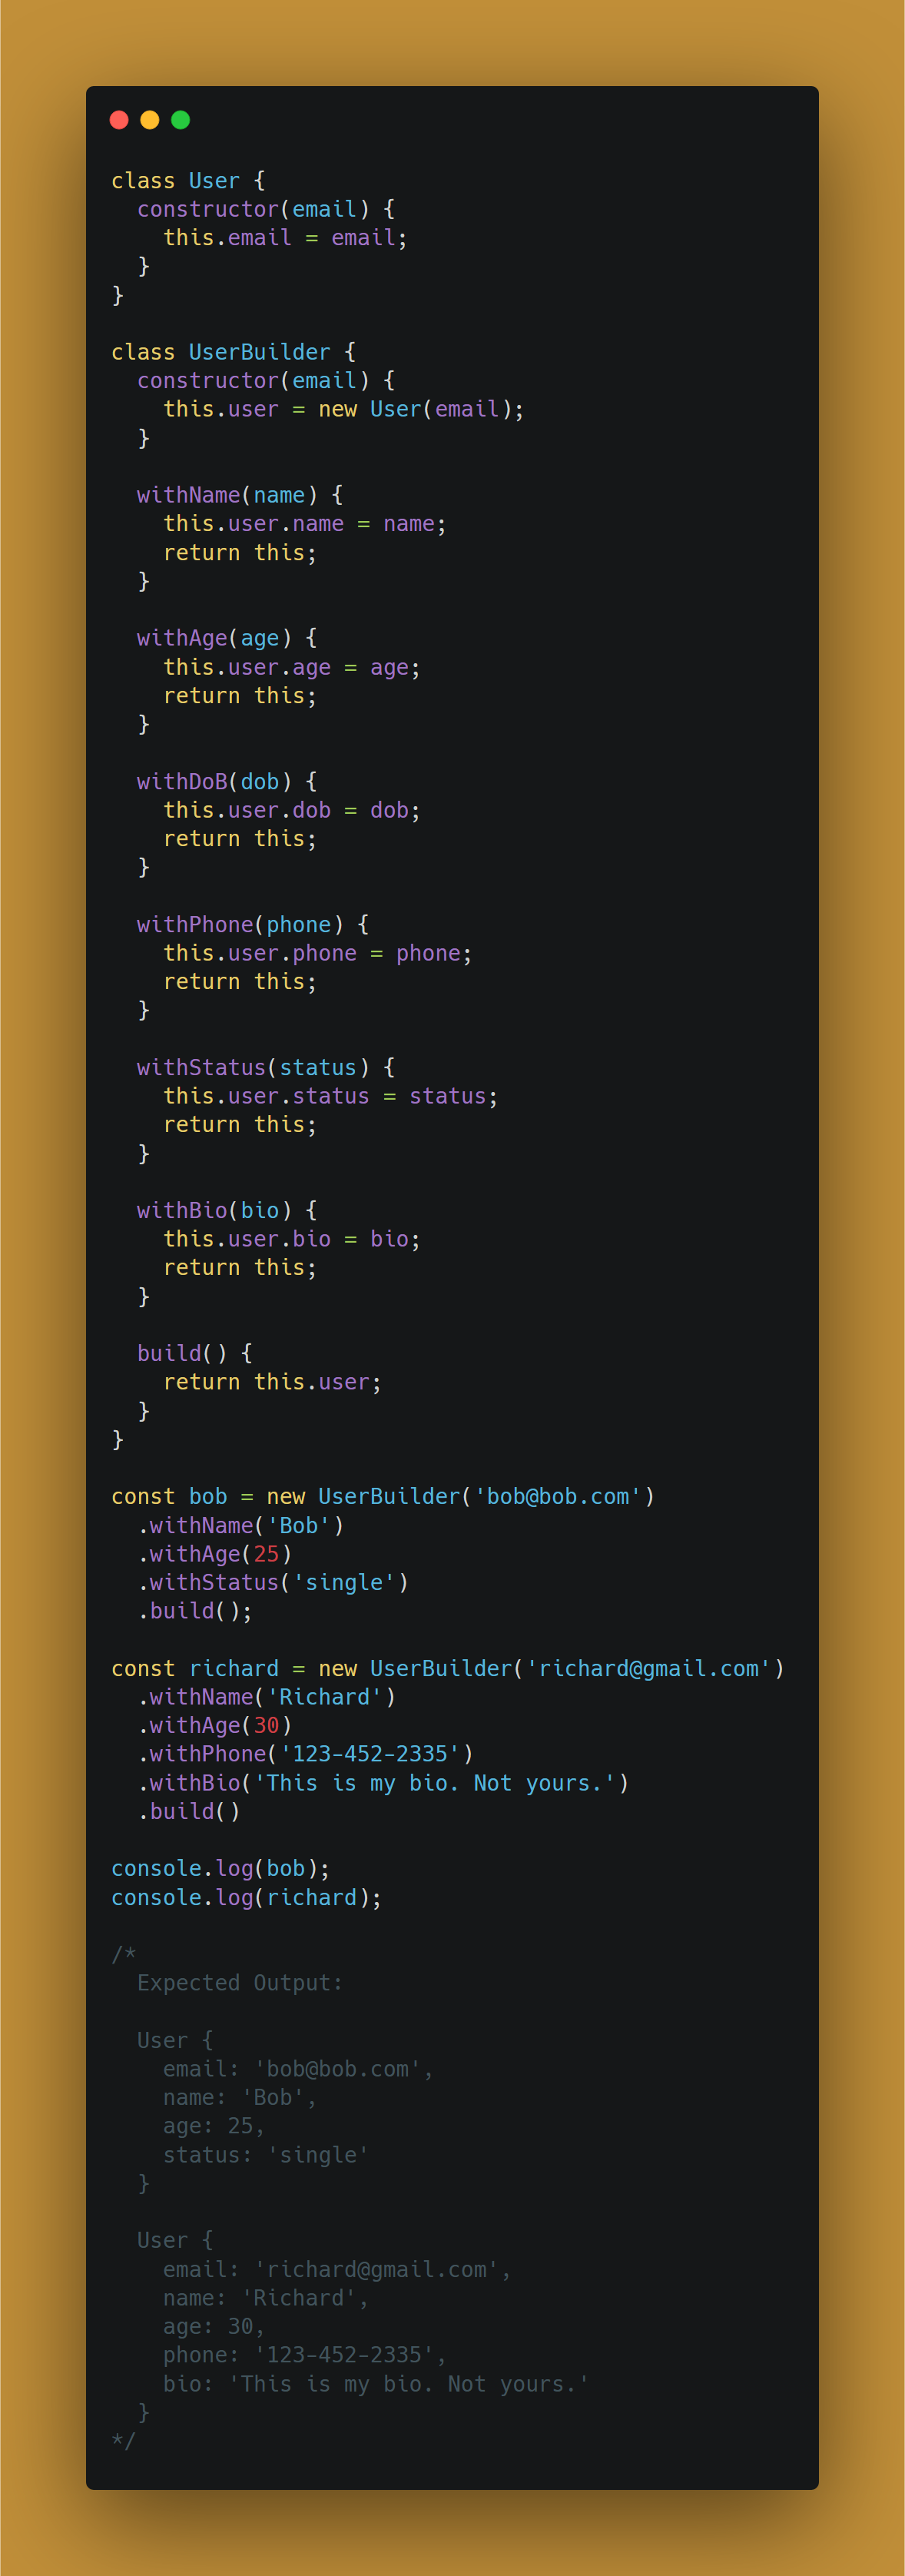 Example of constructing a complex object with the builder design pattern in JavaScript